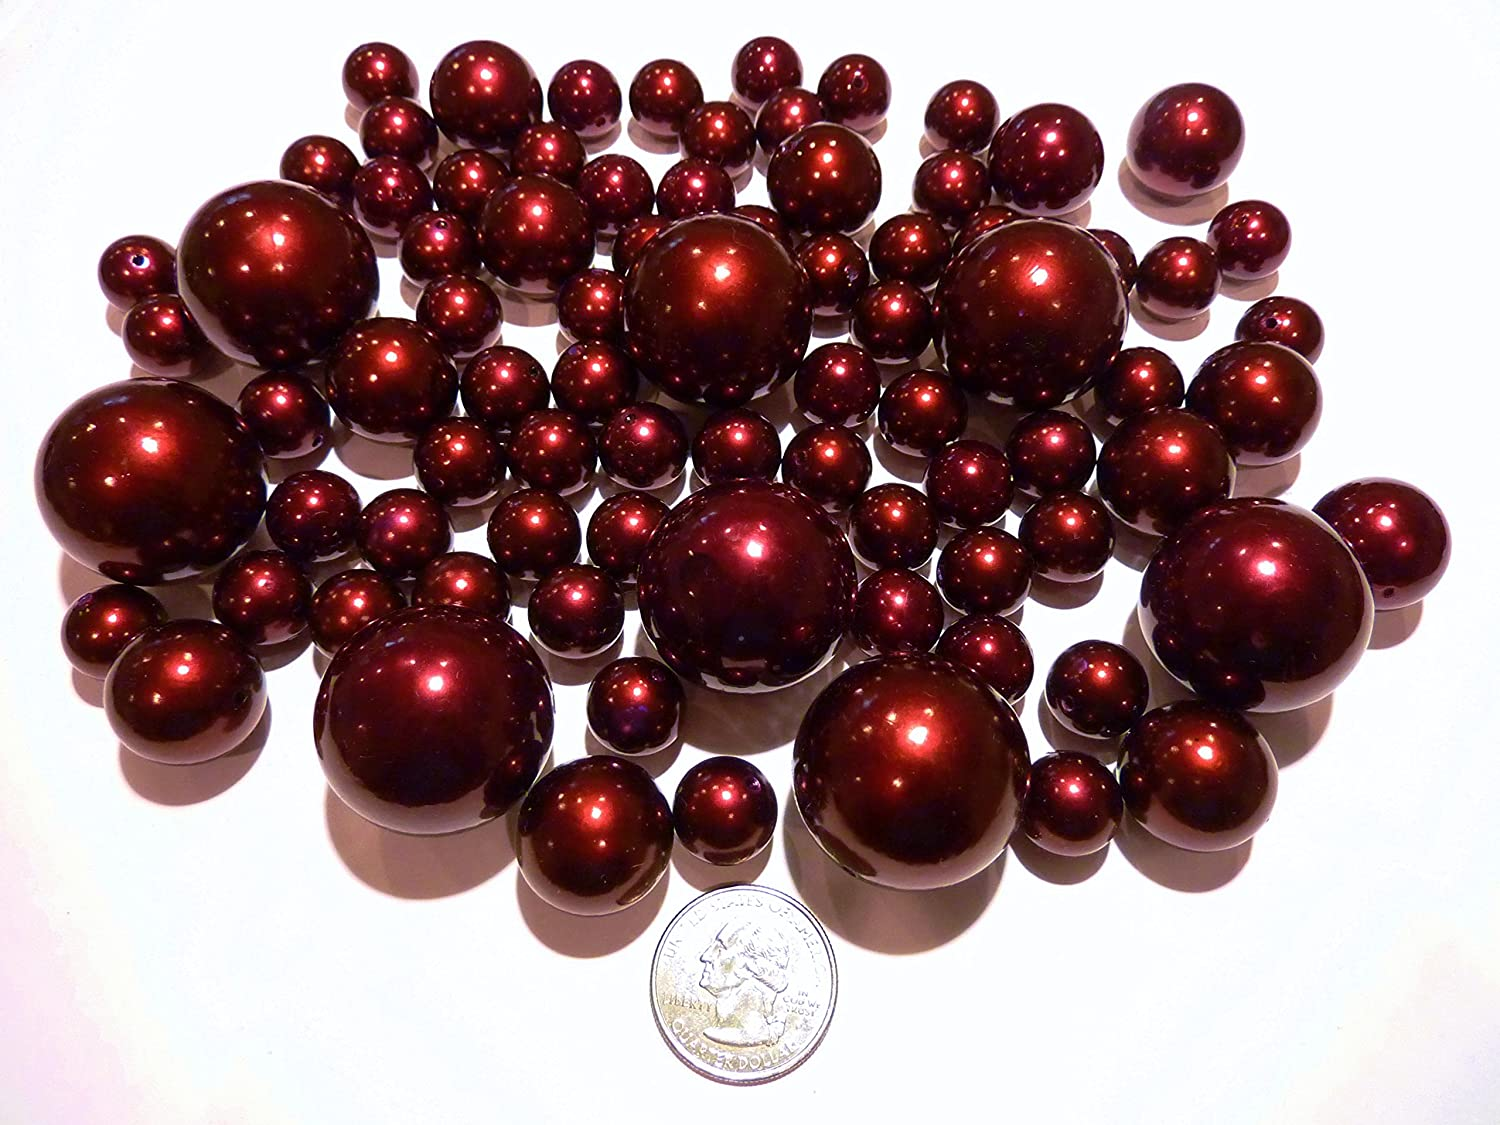 Amazon 2 packs discount jumbo assorted sizes all burgundy amazon 2 packs discount jumbo assorted sizes all burgundy pearls red wine pearls vase fillers for centerpieces to float the pearls floridaeventfo Images